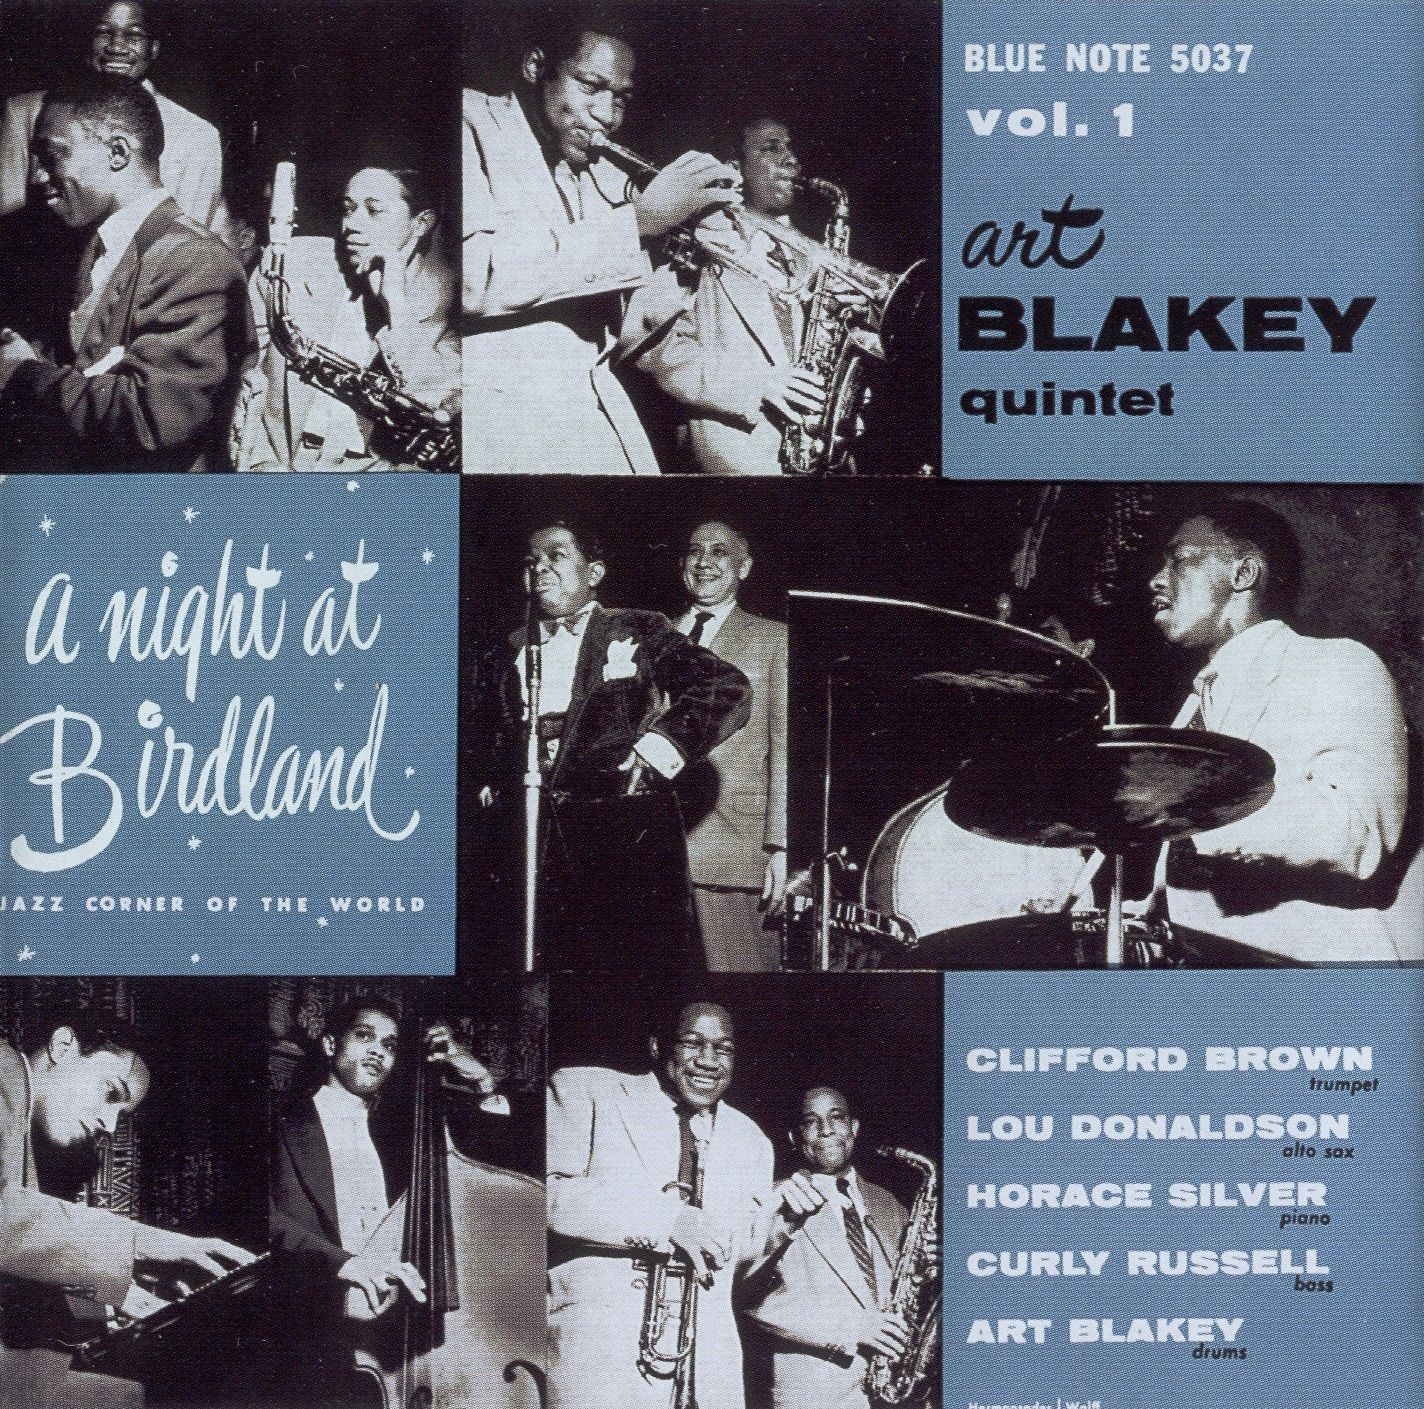 Art Blaket Quintet - A Night at Birdland I (Blue Note, 1954)